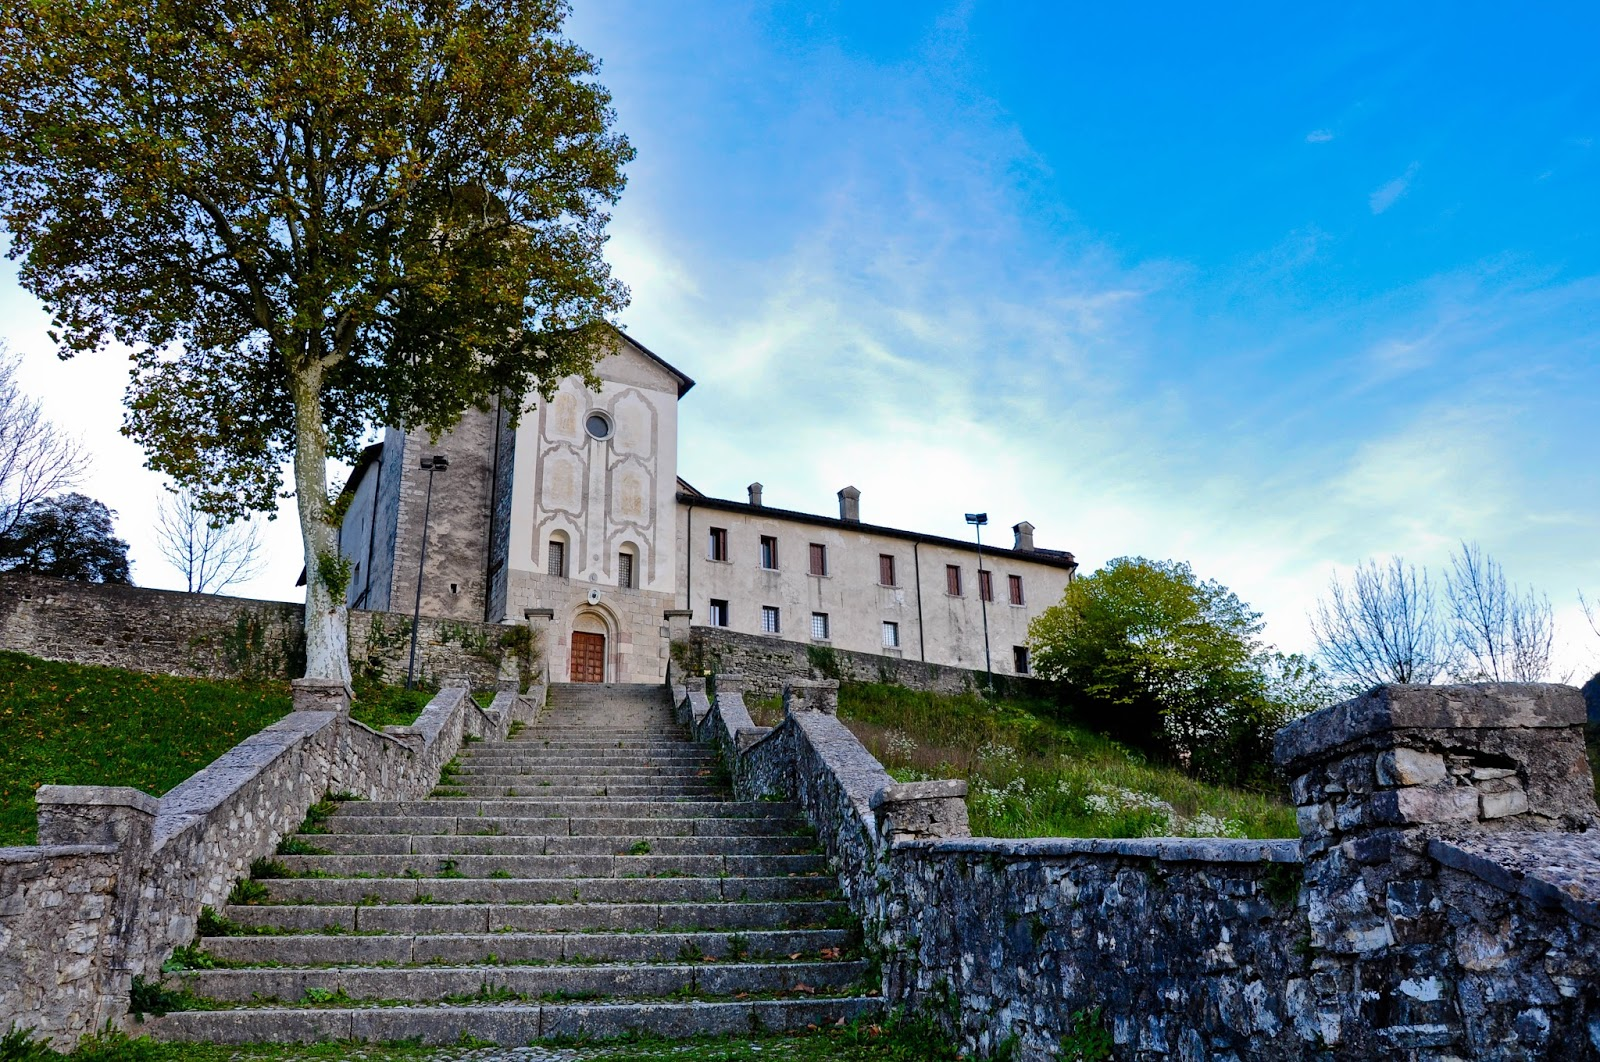 The Sanctuary of St. St. Vittore e Corona, Feltre, Veneto, Italy